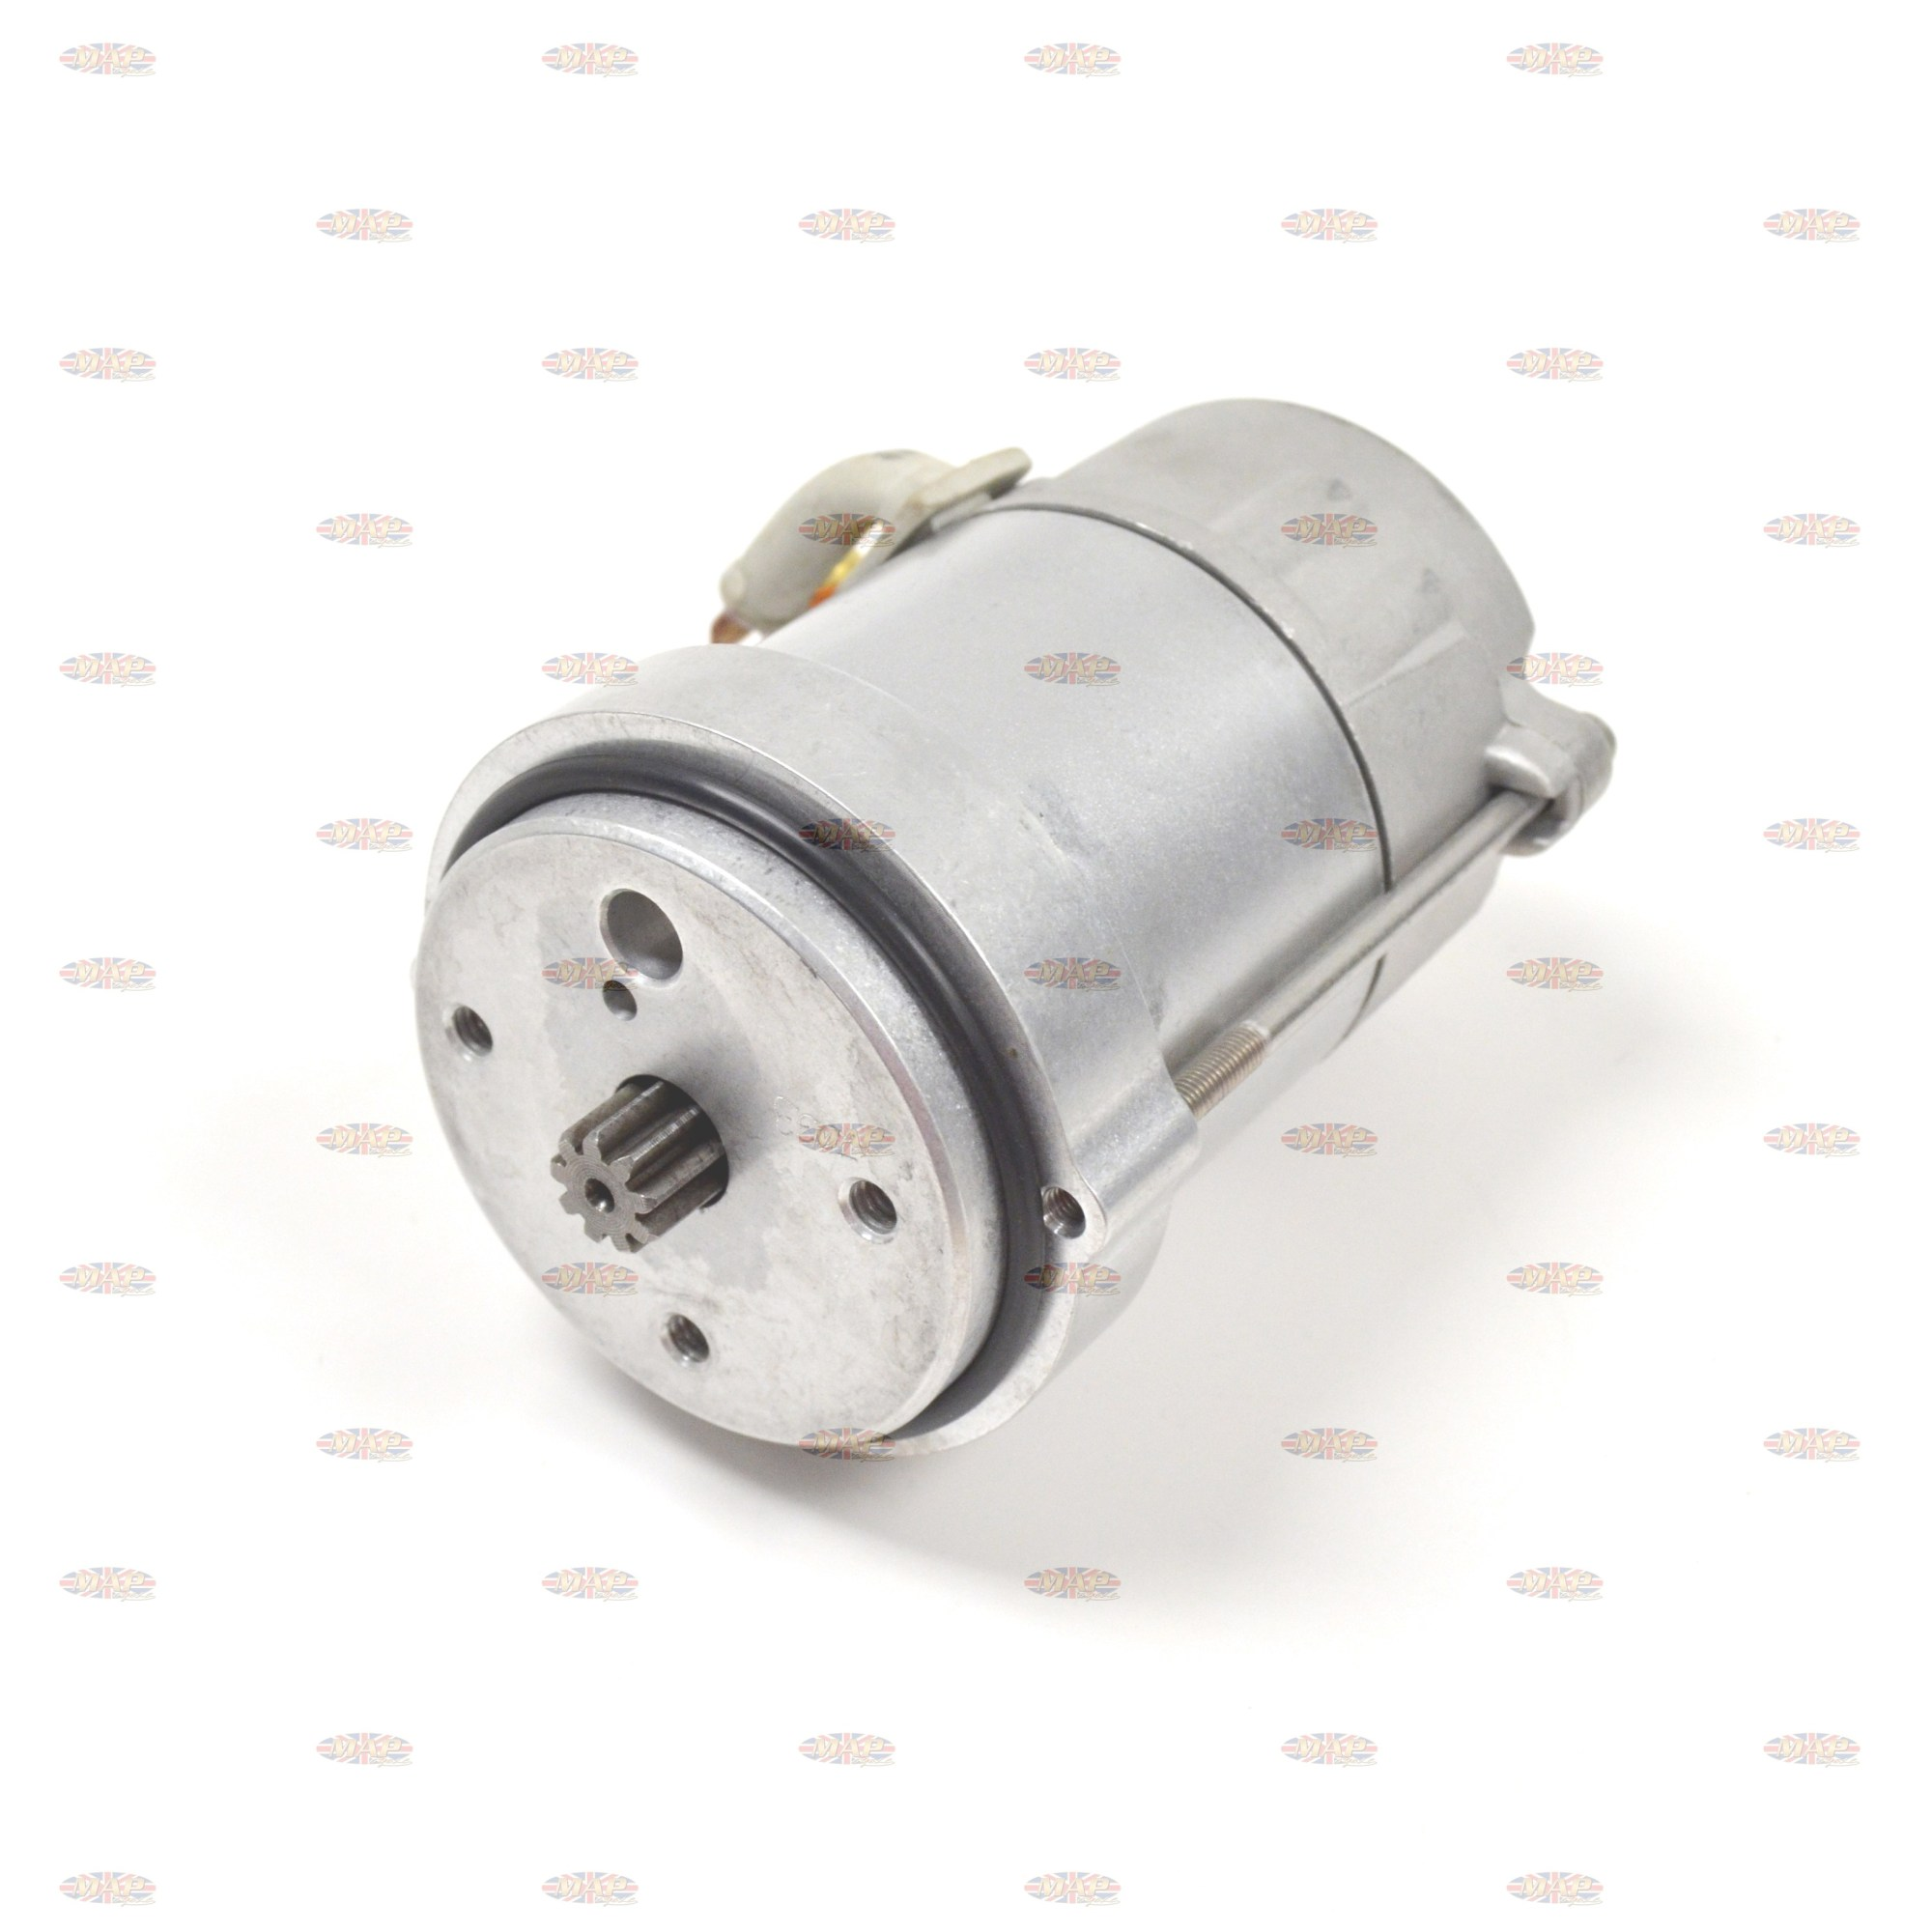 hight resolution of norton commando mkiii heavy duty electric starter motor 06 4791 b